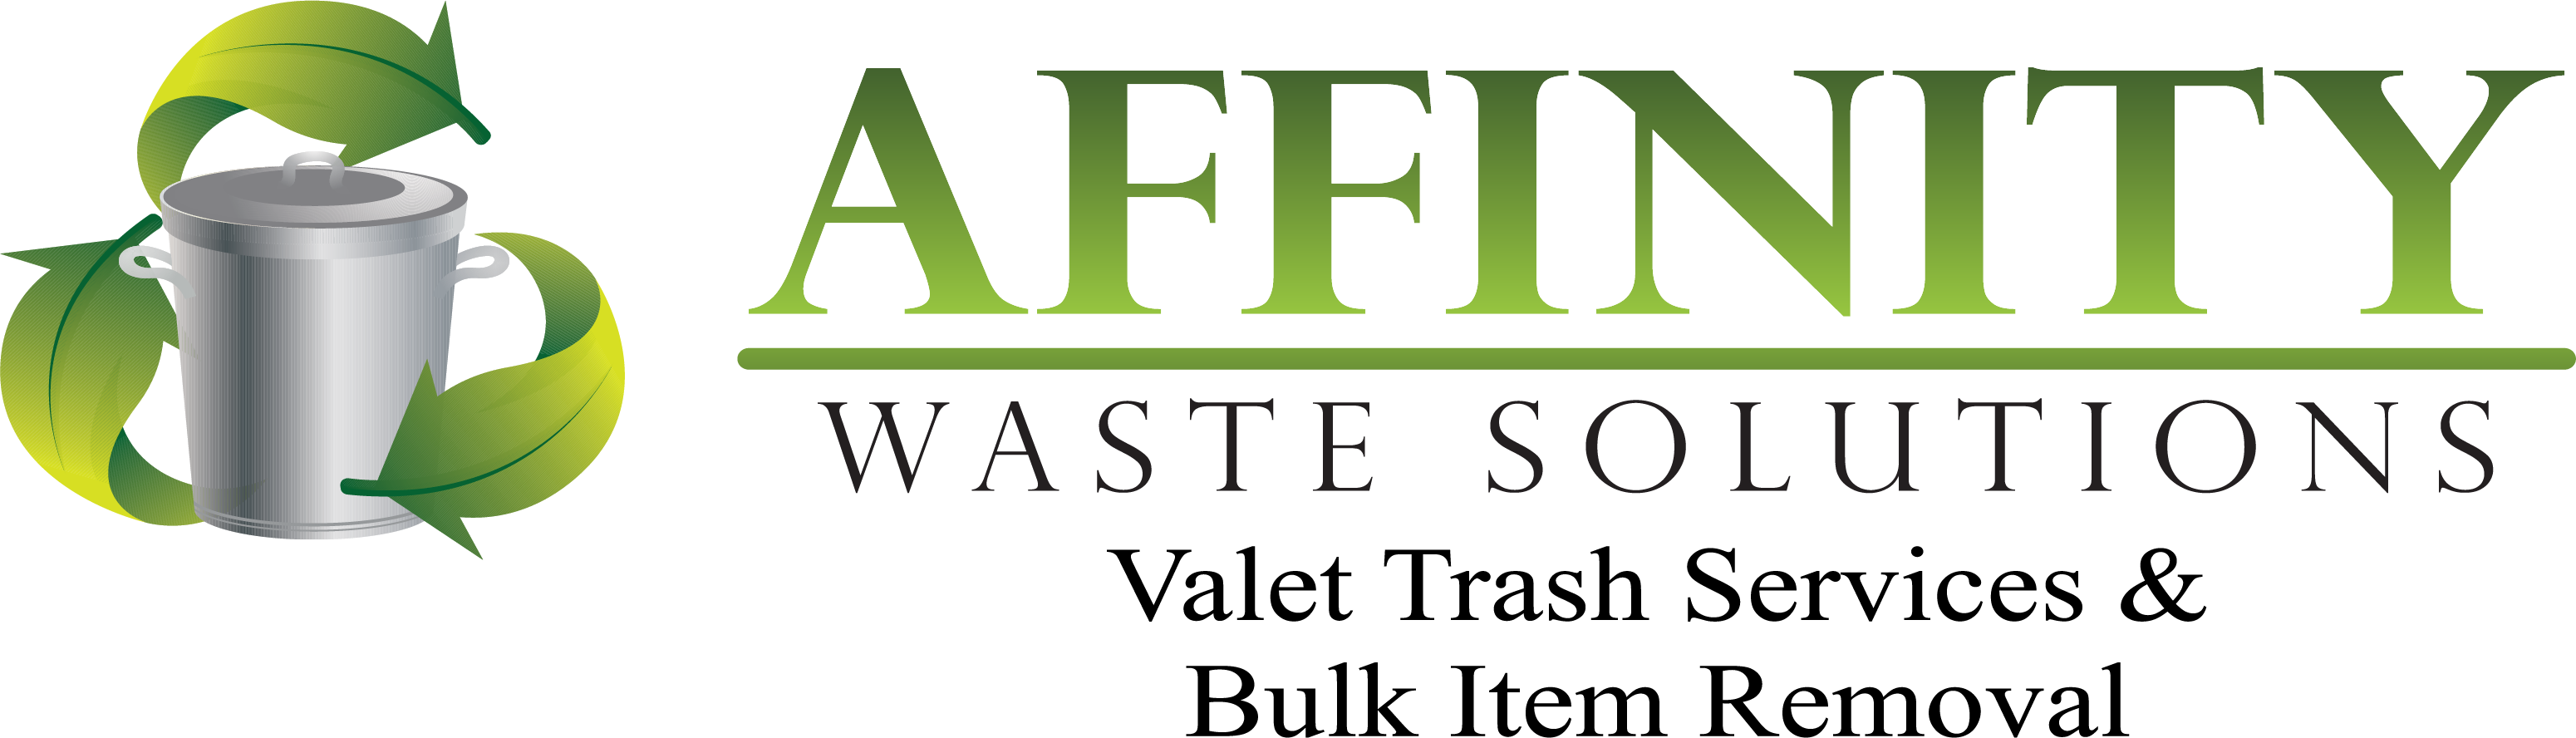 full color Affinity logo with tag